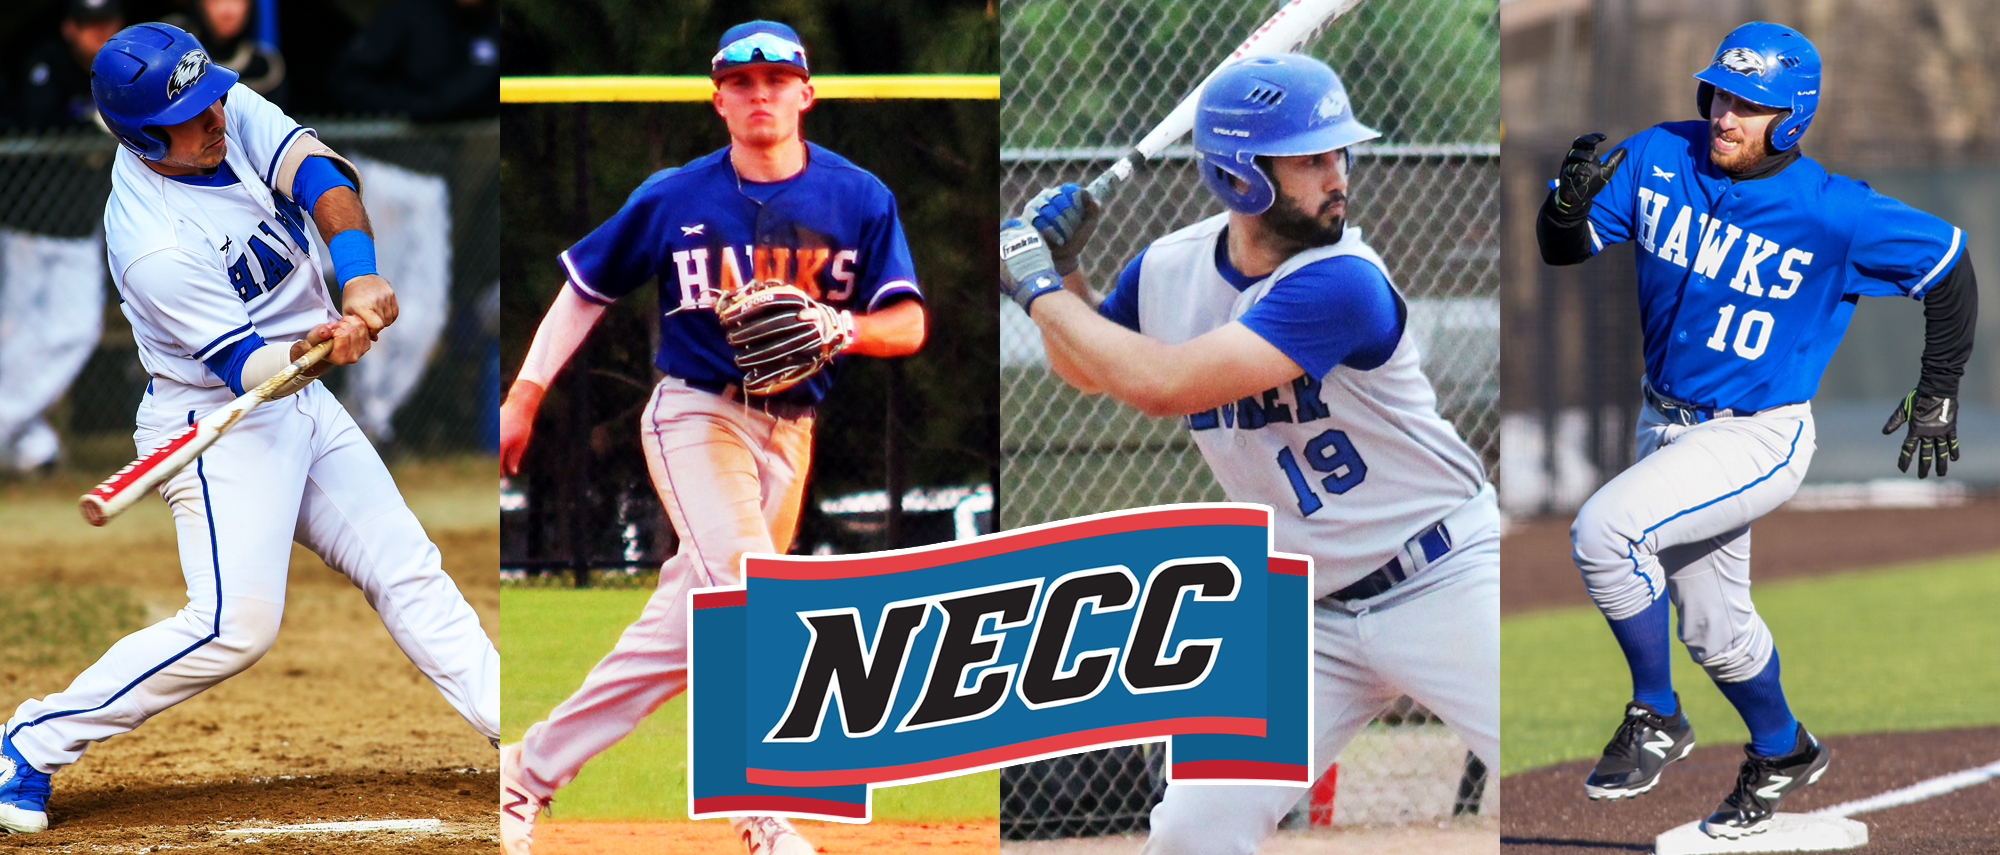 NECC Baseball All-Conference Team